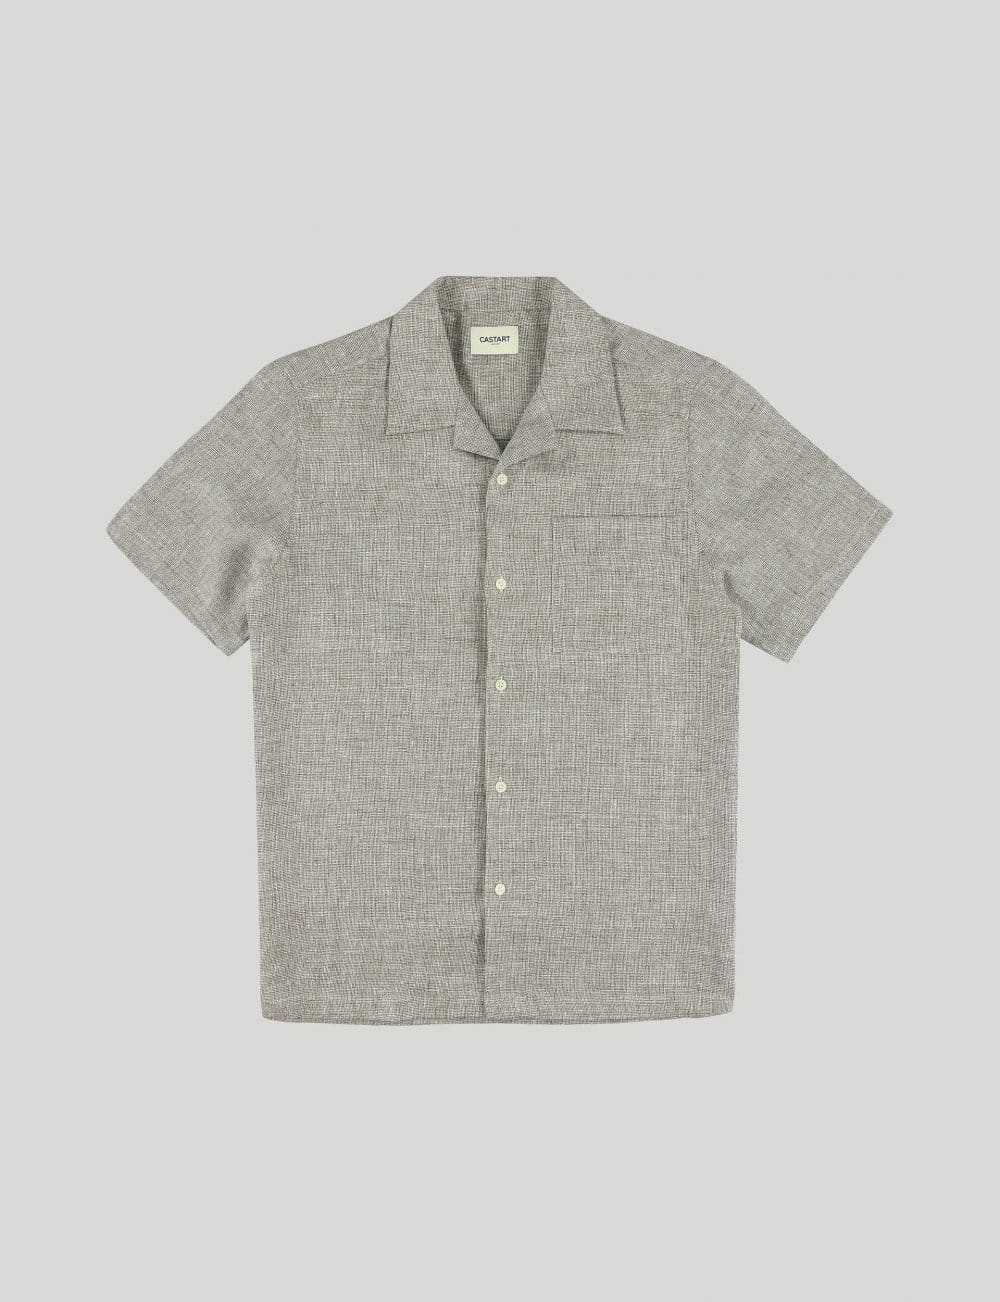 Castart - Devilshead SL Shirt - Brown